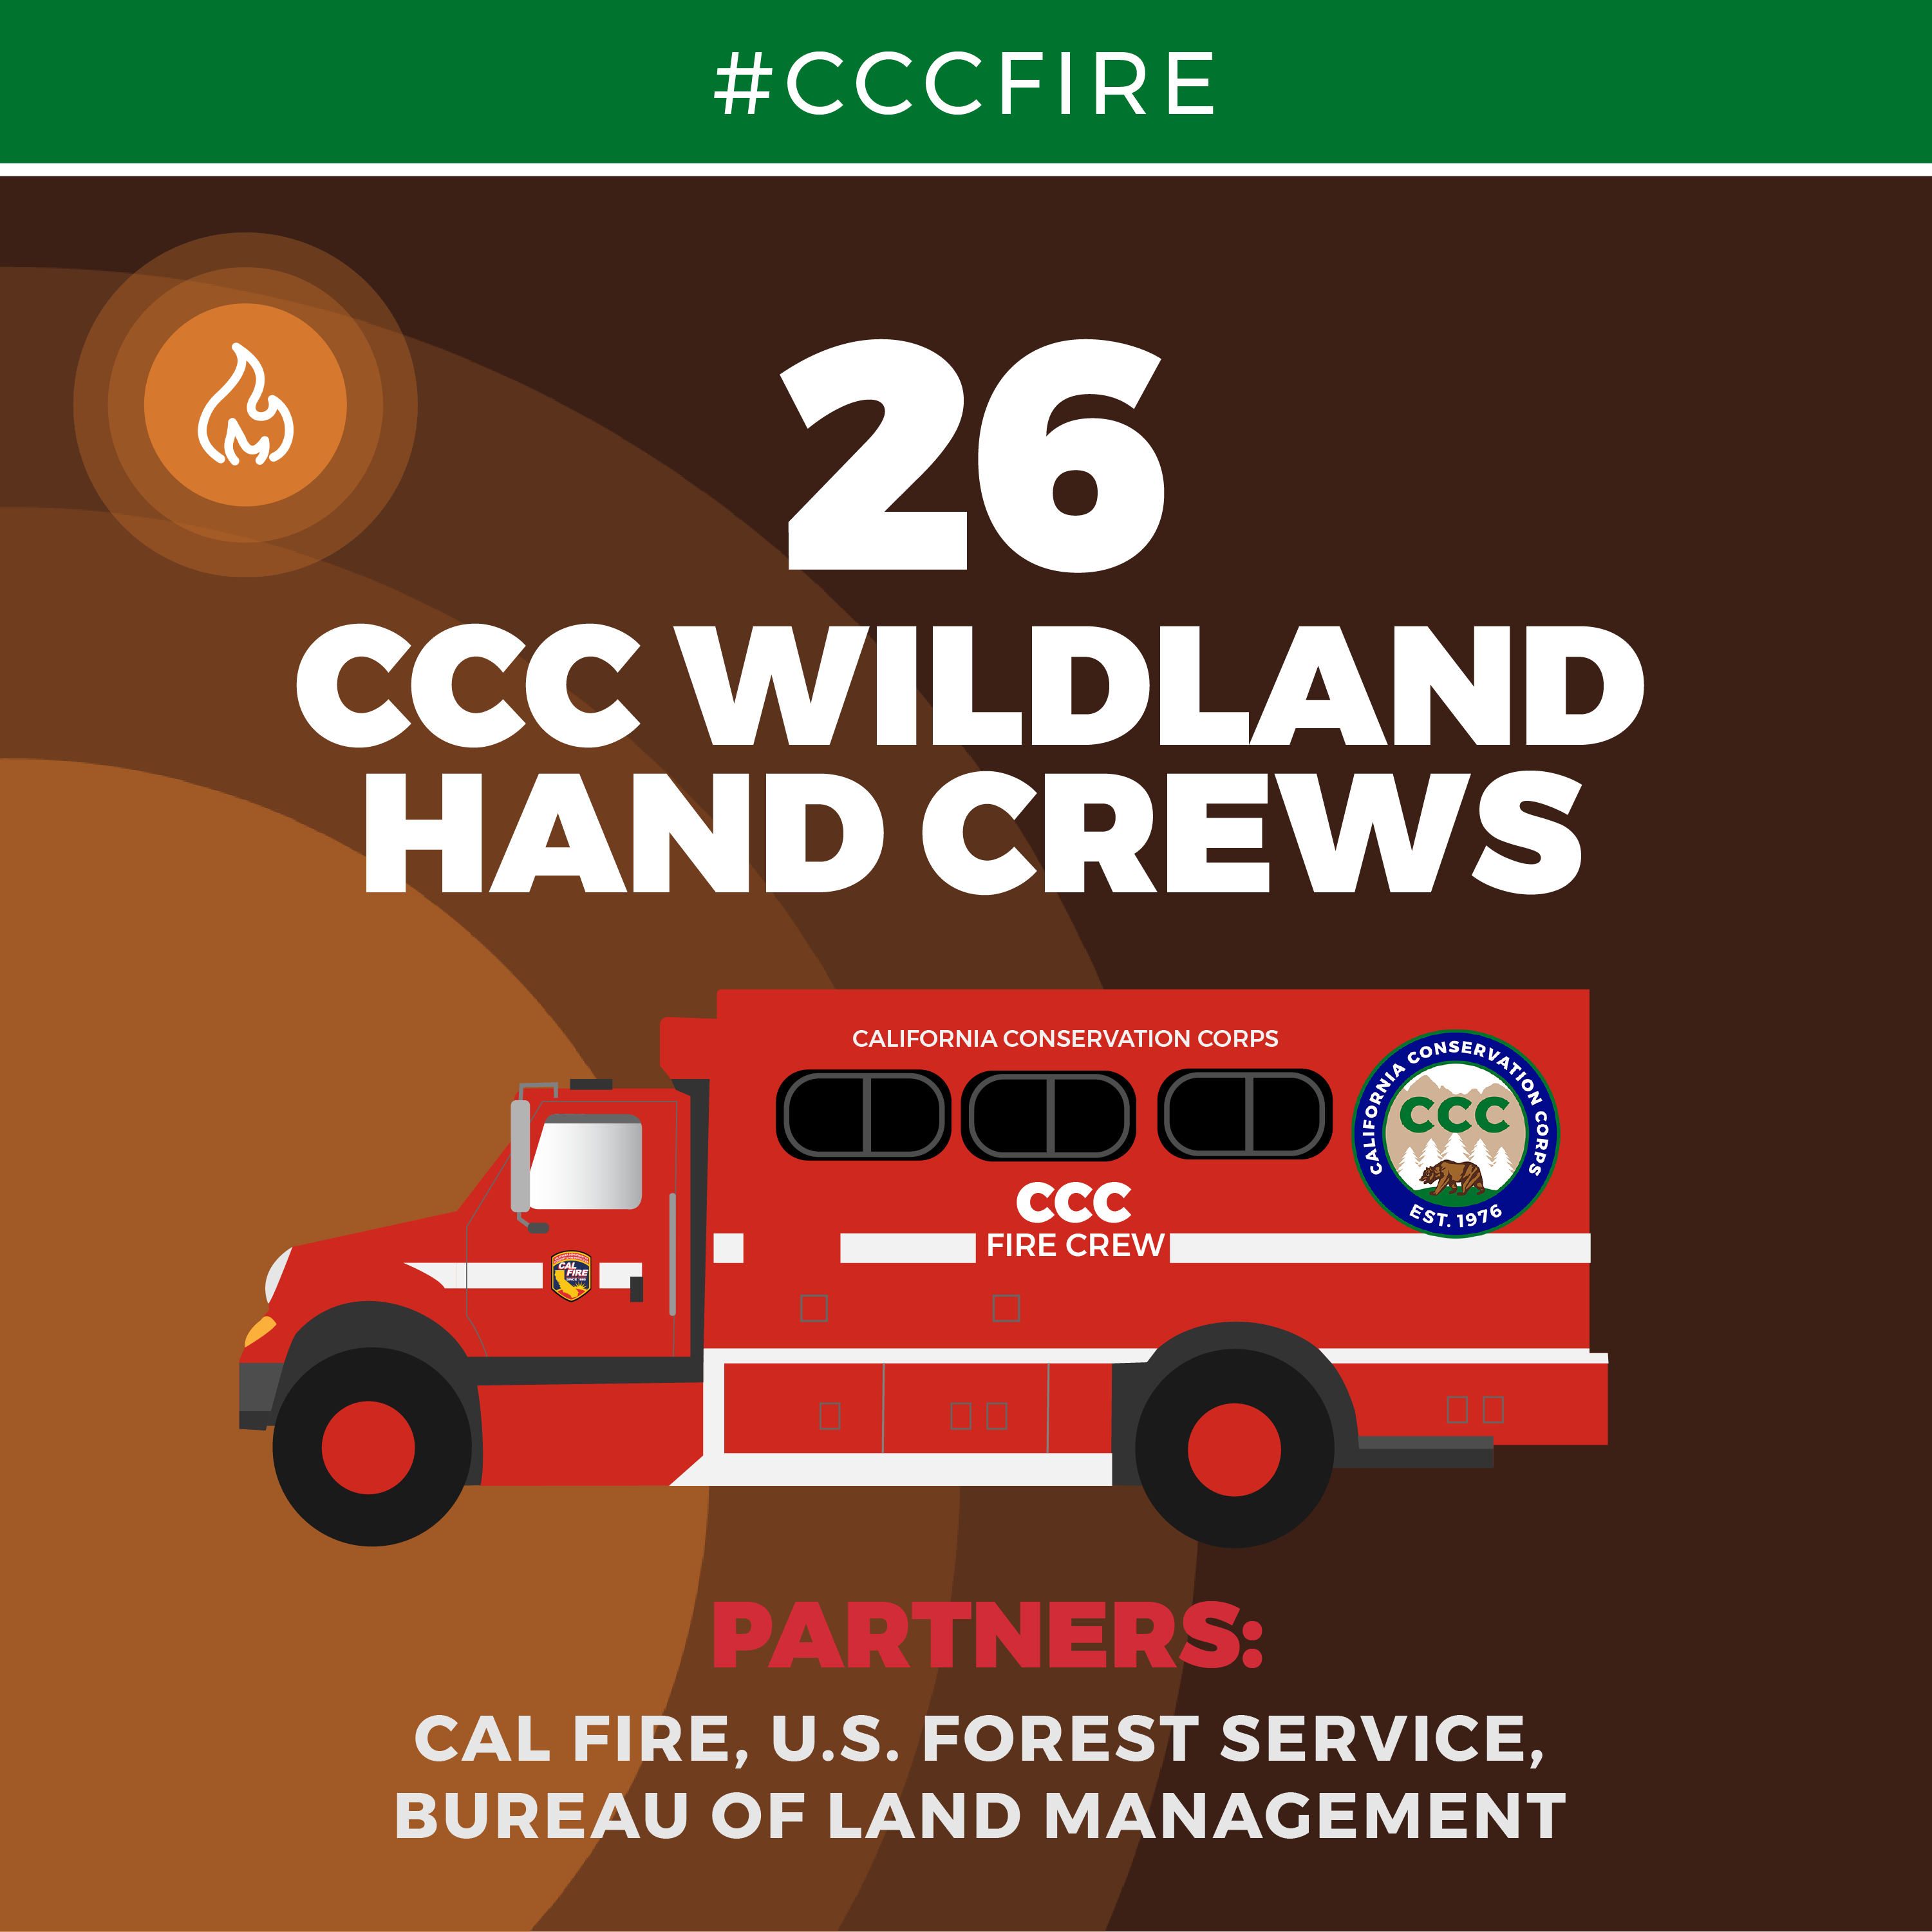 Illustrated image reads #CCCFire, 26 CCC wildland hand crews. Partners: CAL FIRE, U.S. Forest Service, Bureau of Land Management, shows picture of crew buggy with CCC logo